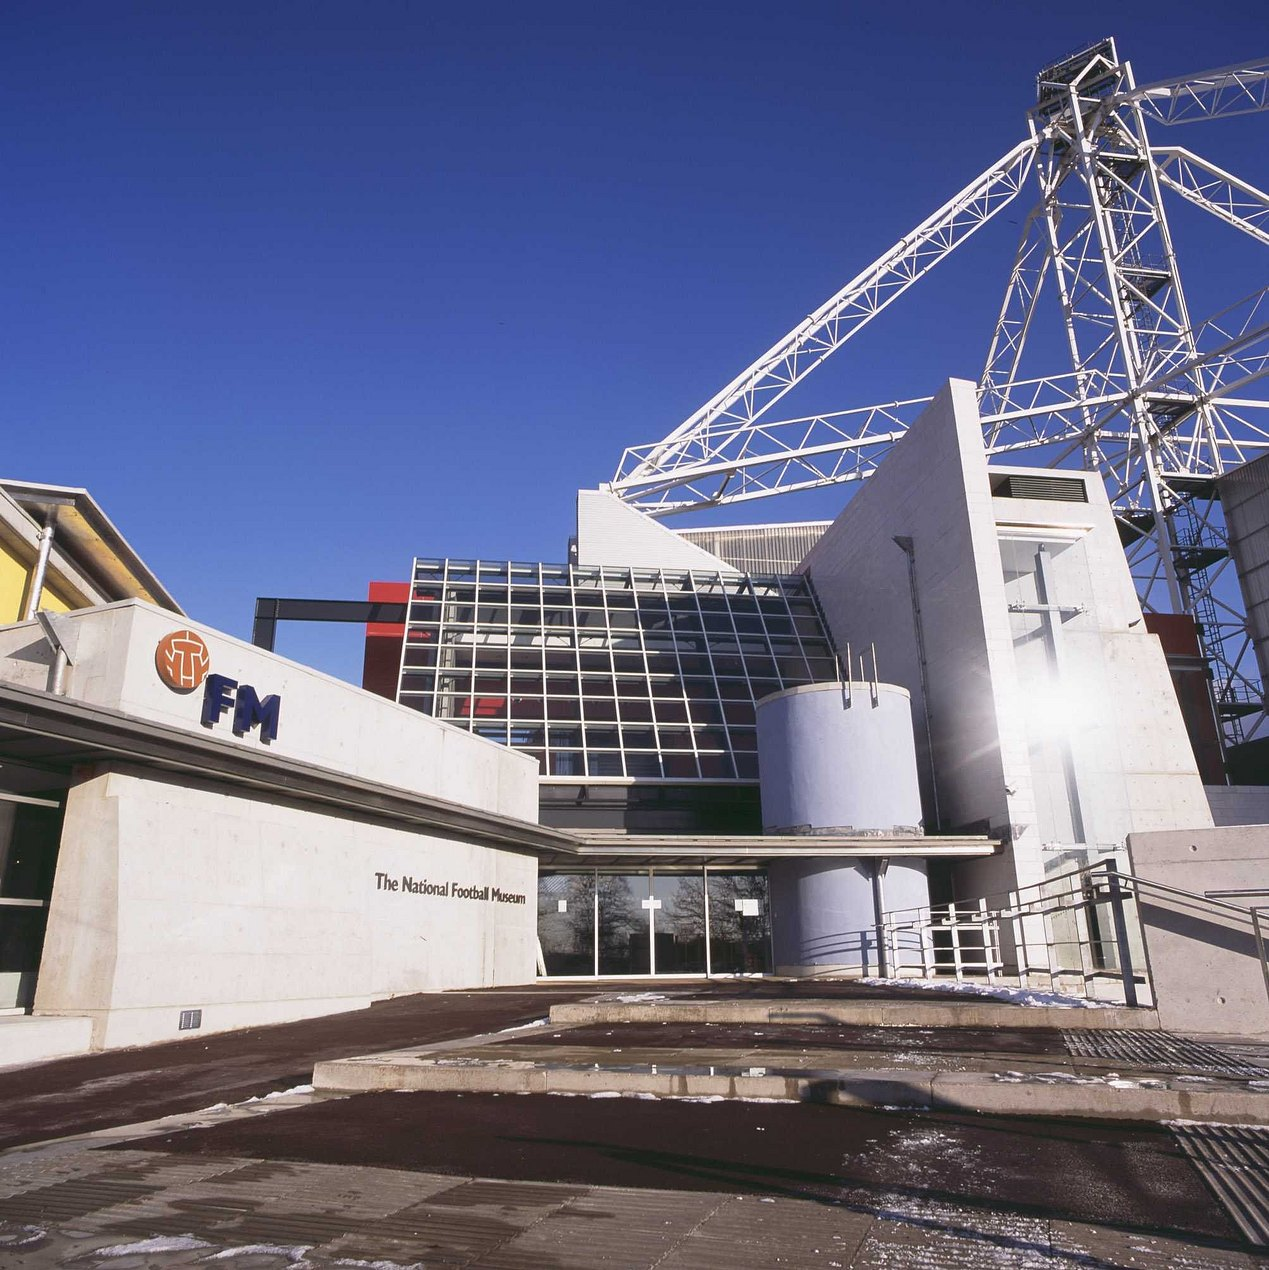 Relocating Football Museum could cost £8m